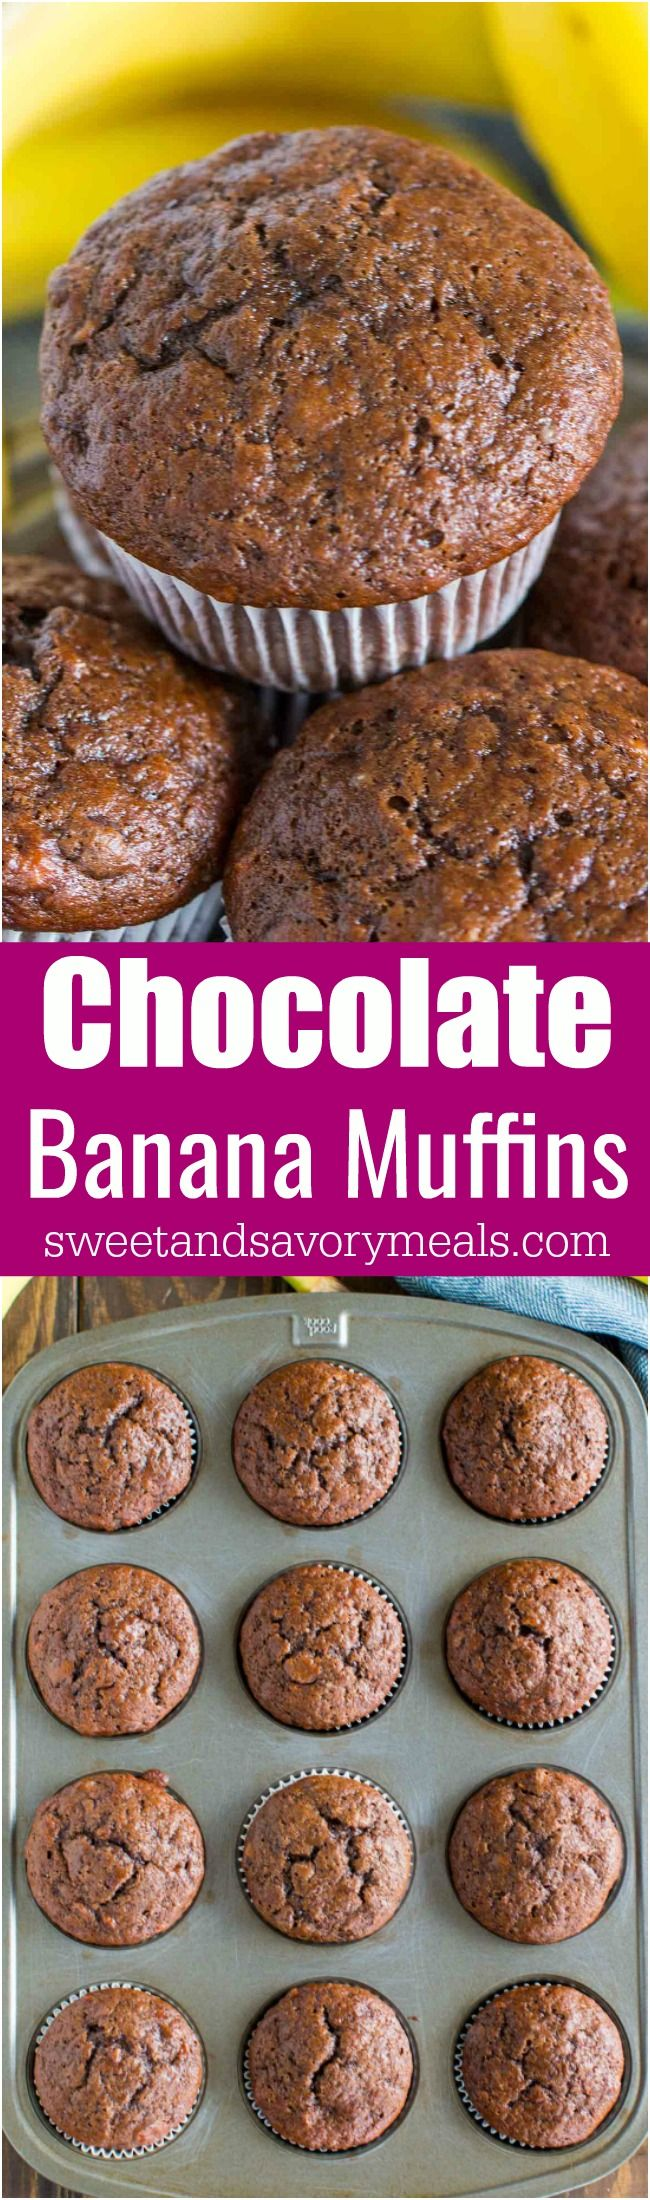 Chocolate Banana Muffins are the best way to use over ripe bananas. The muffins are very easy to make, soft, chocolaty and full of flavor. #muffins #chocolate #banana